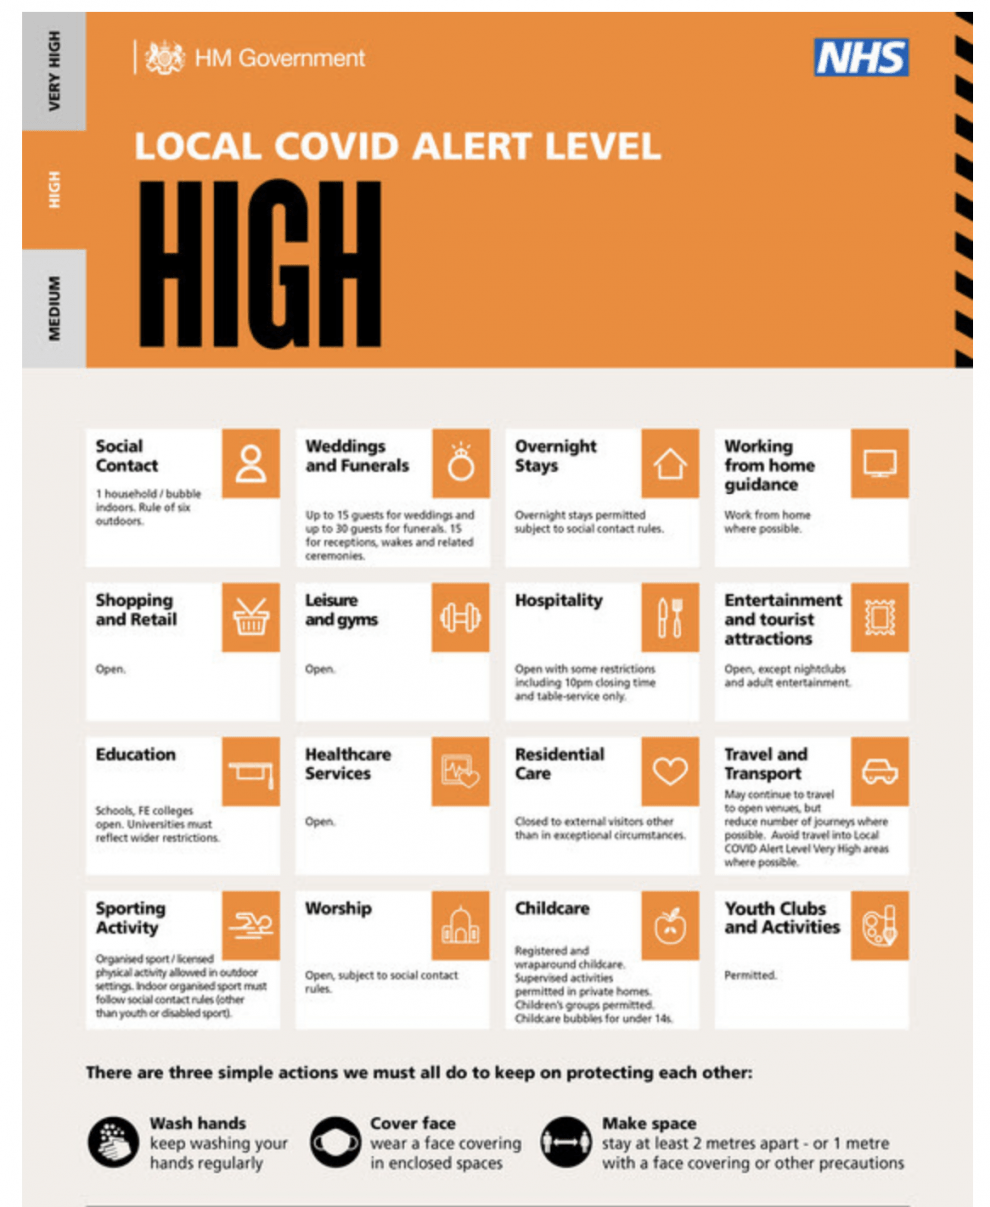 as you will all know by now from midnight tonight the whole of london moves into the high covid alert level